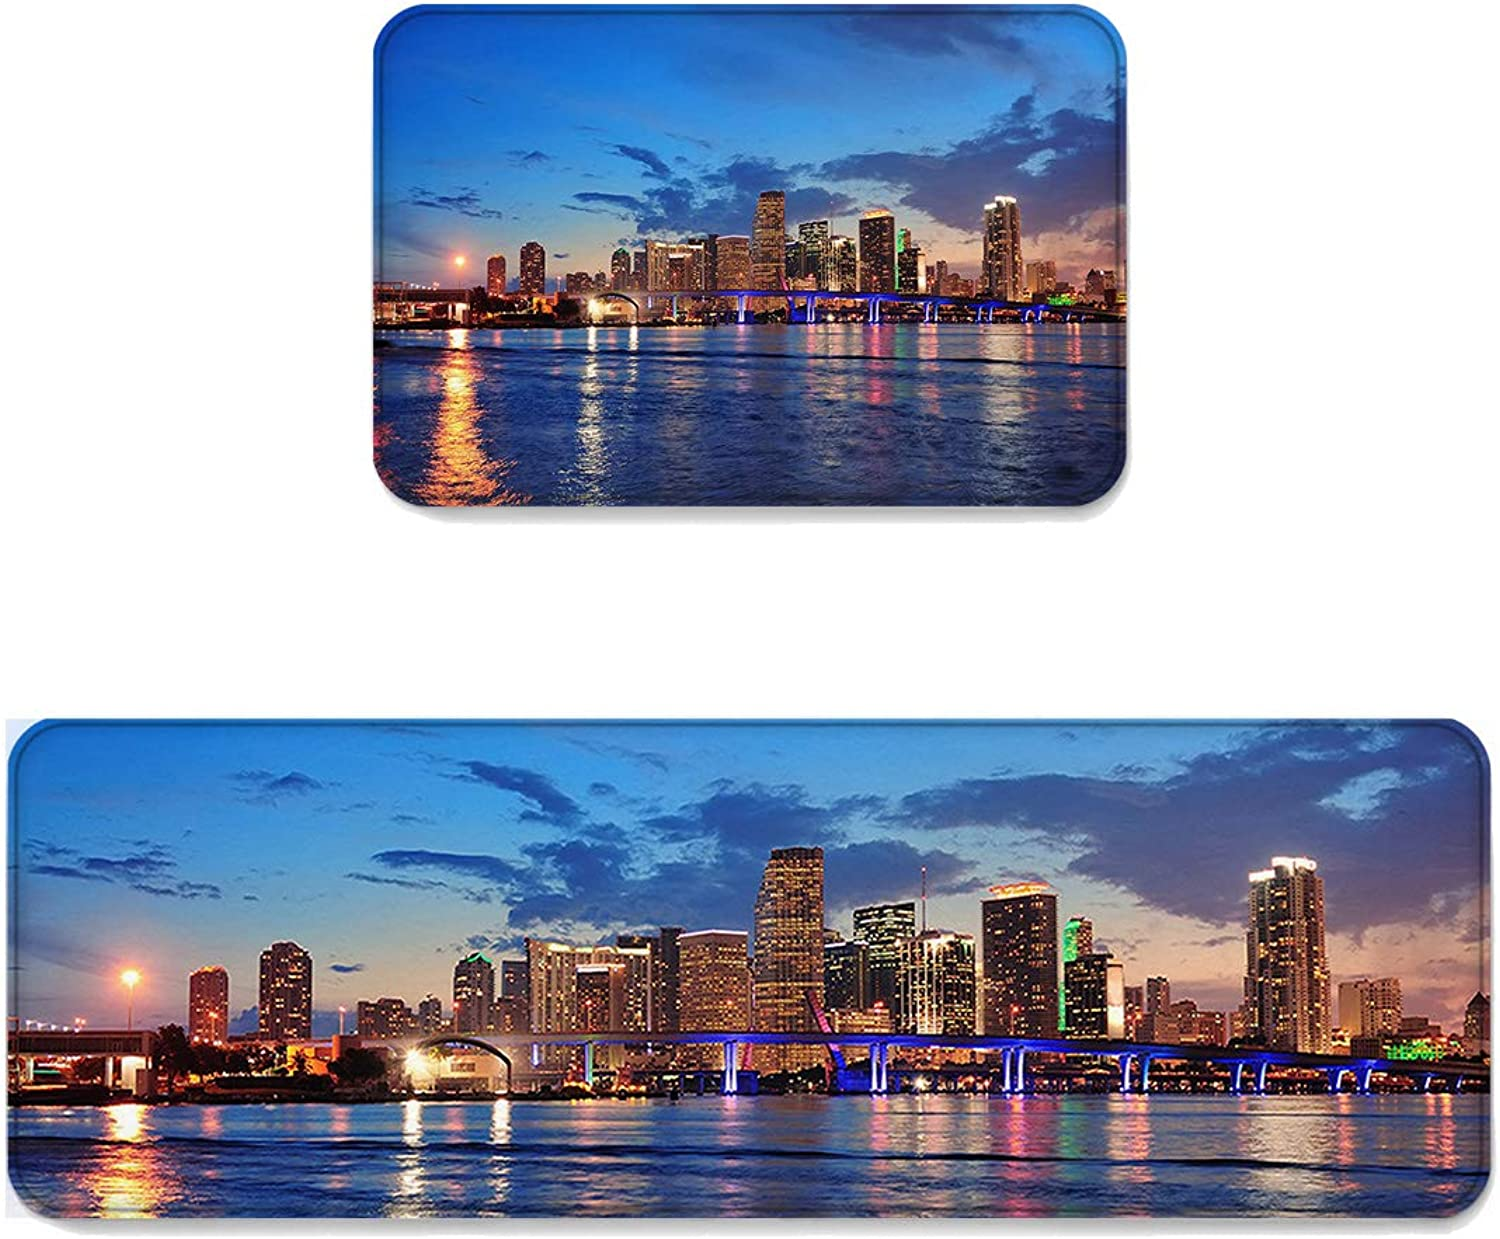 Kitchen Rug Sets 2 Piece Floor Mats Non-Slip Rubber Backing Area Rugs Miami Sea and City Night Scenes in The Evening Doormat Washable Carpet Inside Door Mat Pad Sets (23.6  x 35.4 +23.6  x 70.9 )